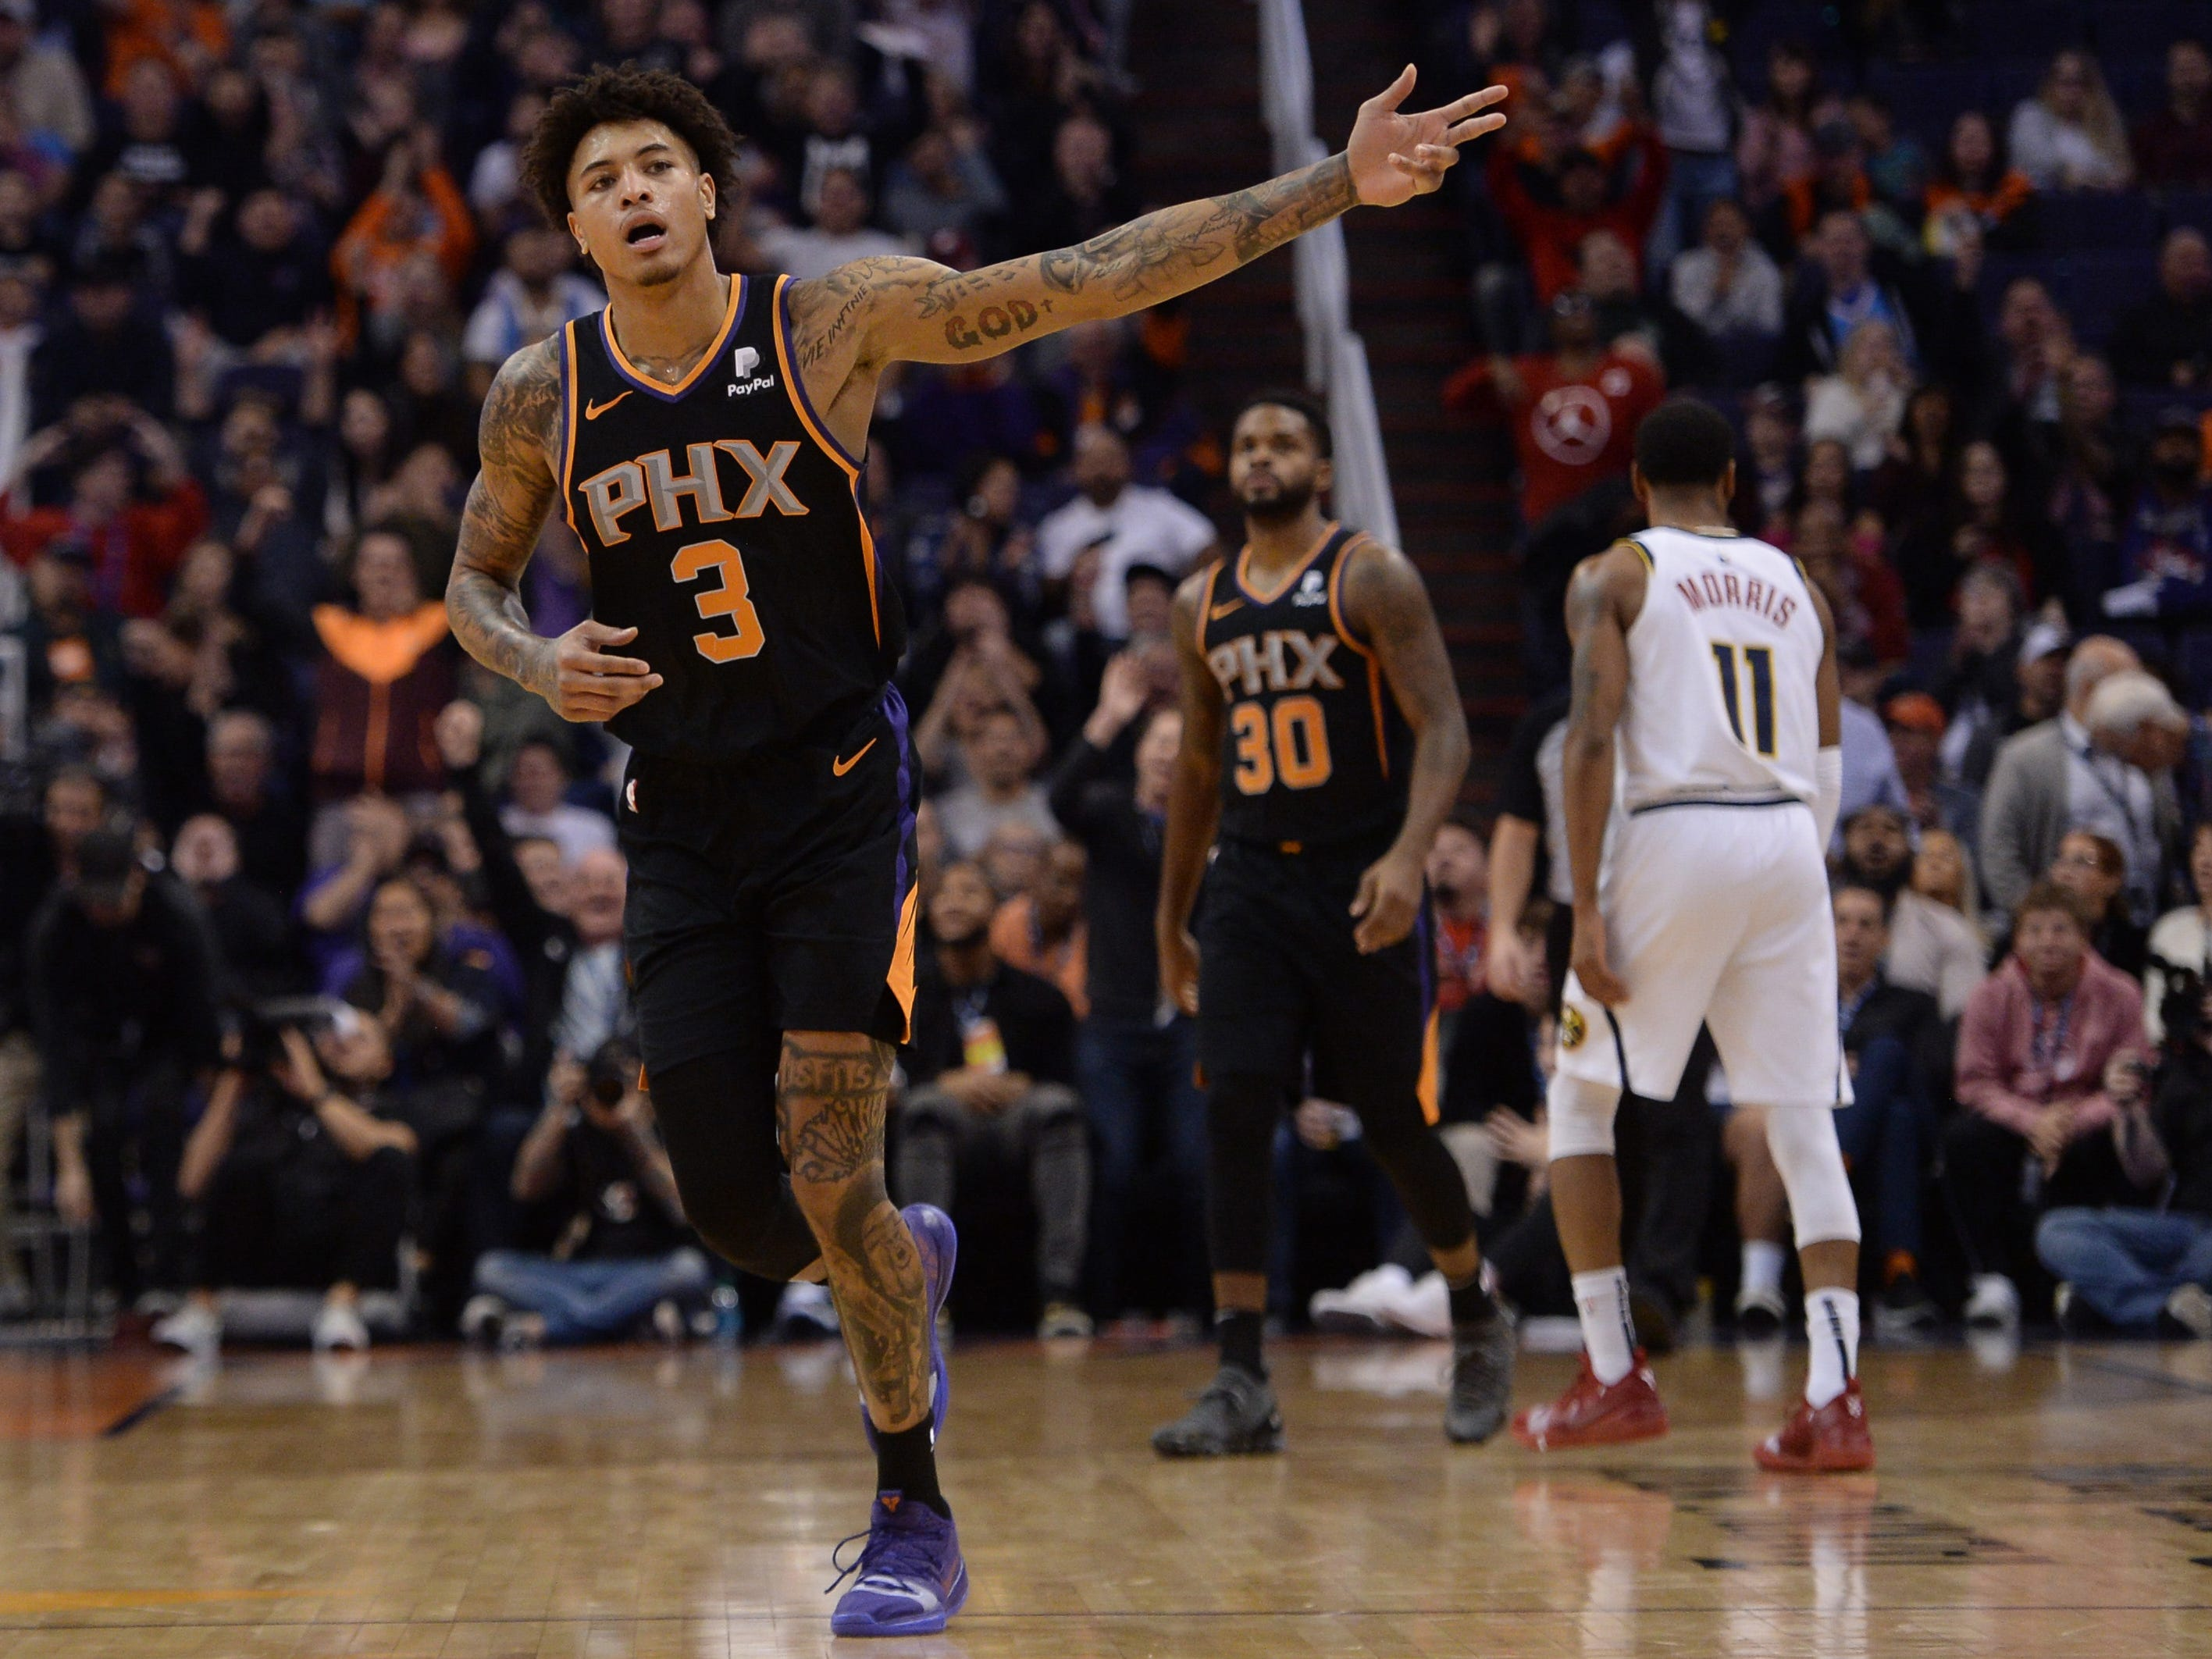 Jan 12, 2019; Phoenix, AZ, USA; Phoenix Suns forward Kelly Oubre Jr. (3) celebrates after making a buzzer beater three point shot against the Denver Nuggets during the second half. (Joe Camporeale-USA TODAY Sports)